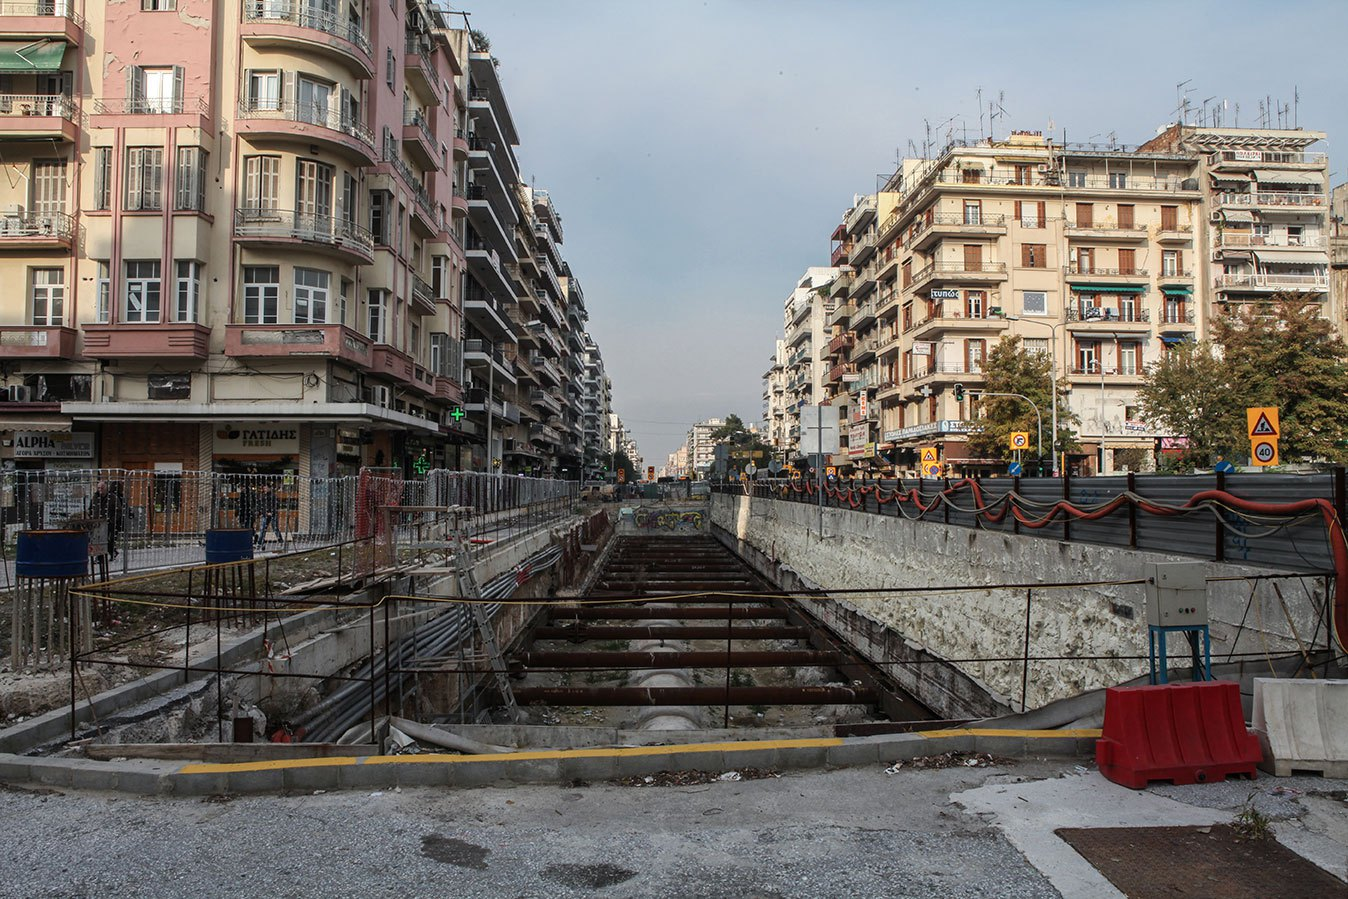 A gaping hole left by the aborted Metro project, like an urban wound, has disfigured the city aesthetically and burdened it with additional traffic. For locals, it serves as a constant reminder, not only of the Greek state's ineffectiveness, but also of the paralysis that the entire country has suffered since the onset of the crisis.